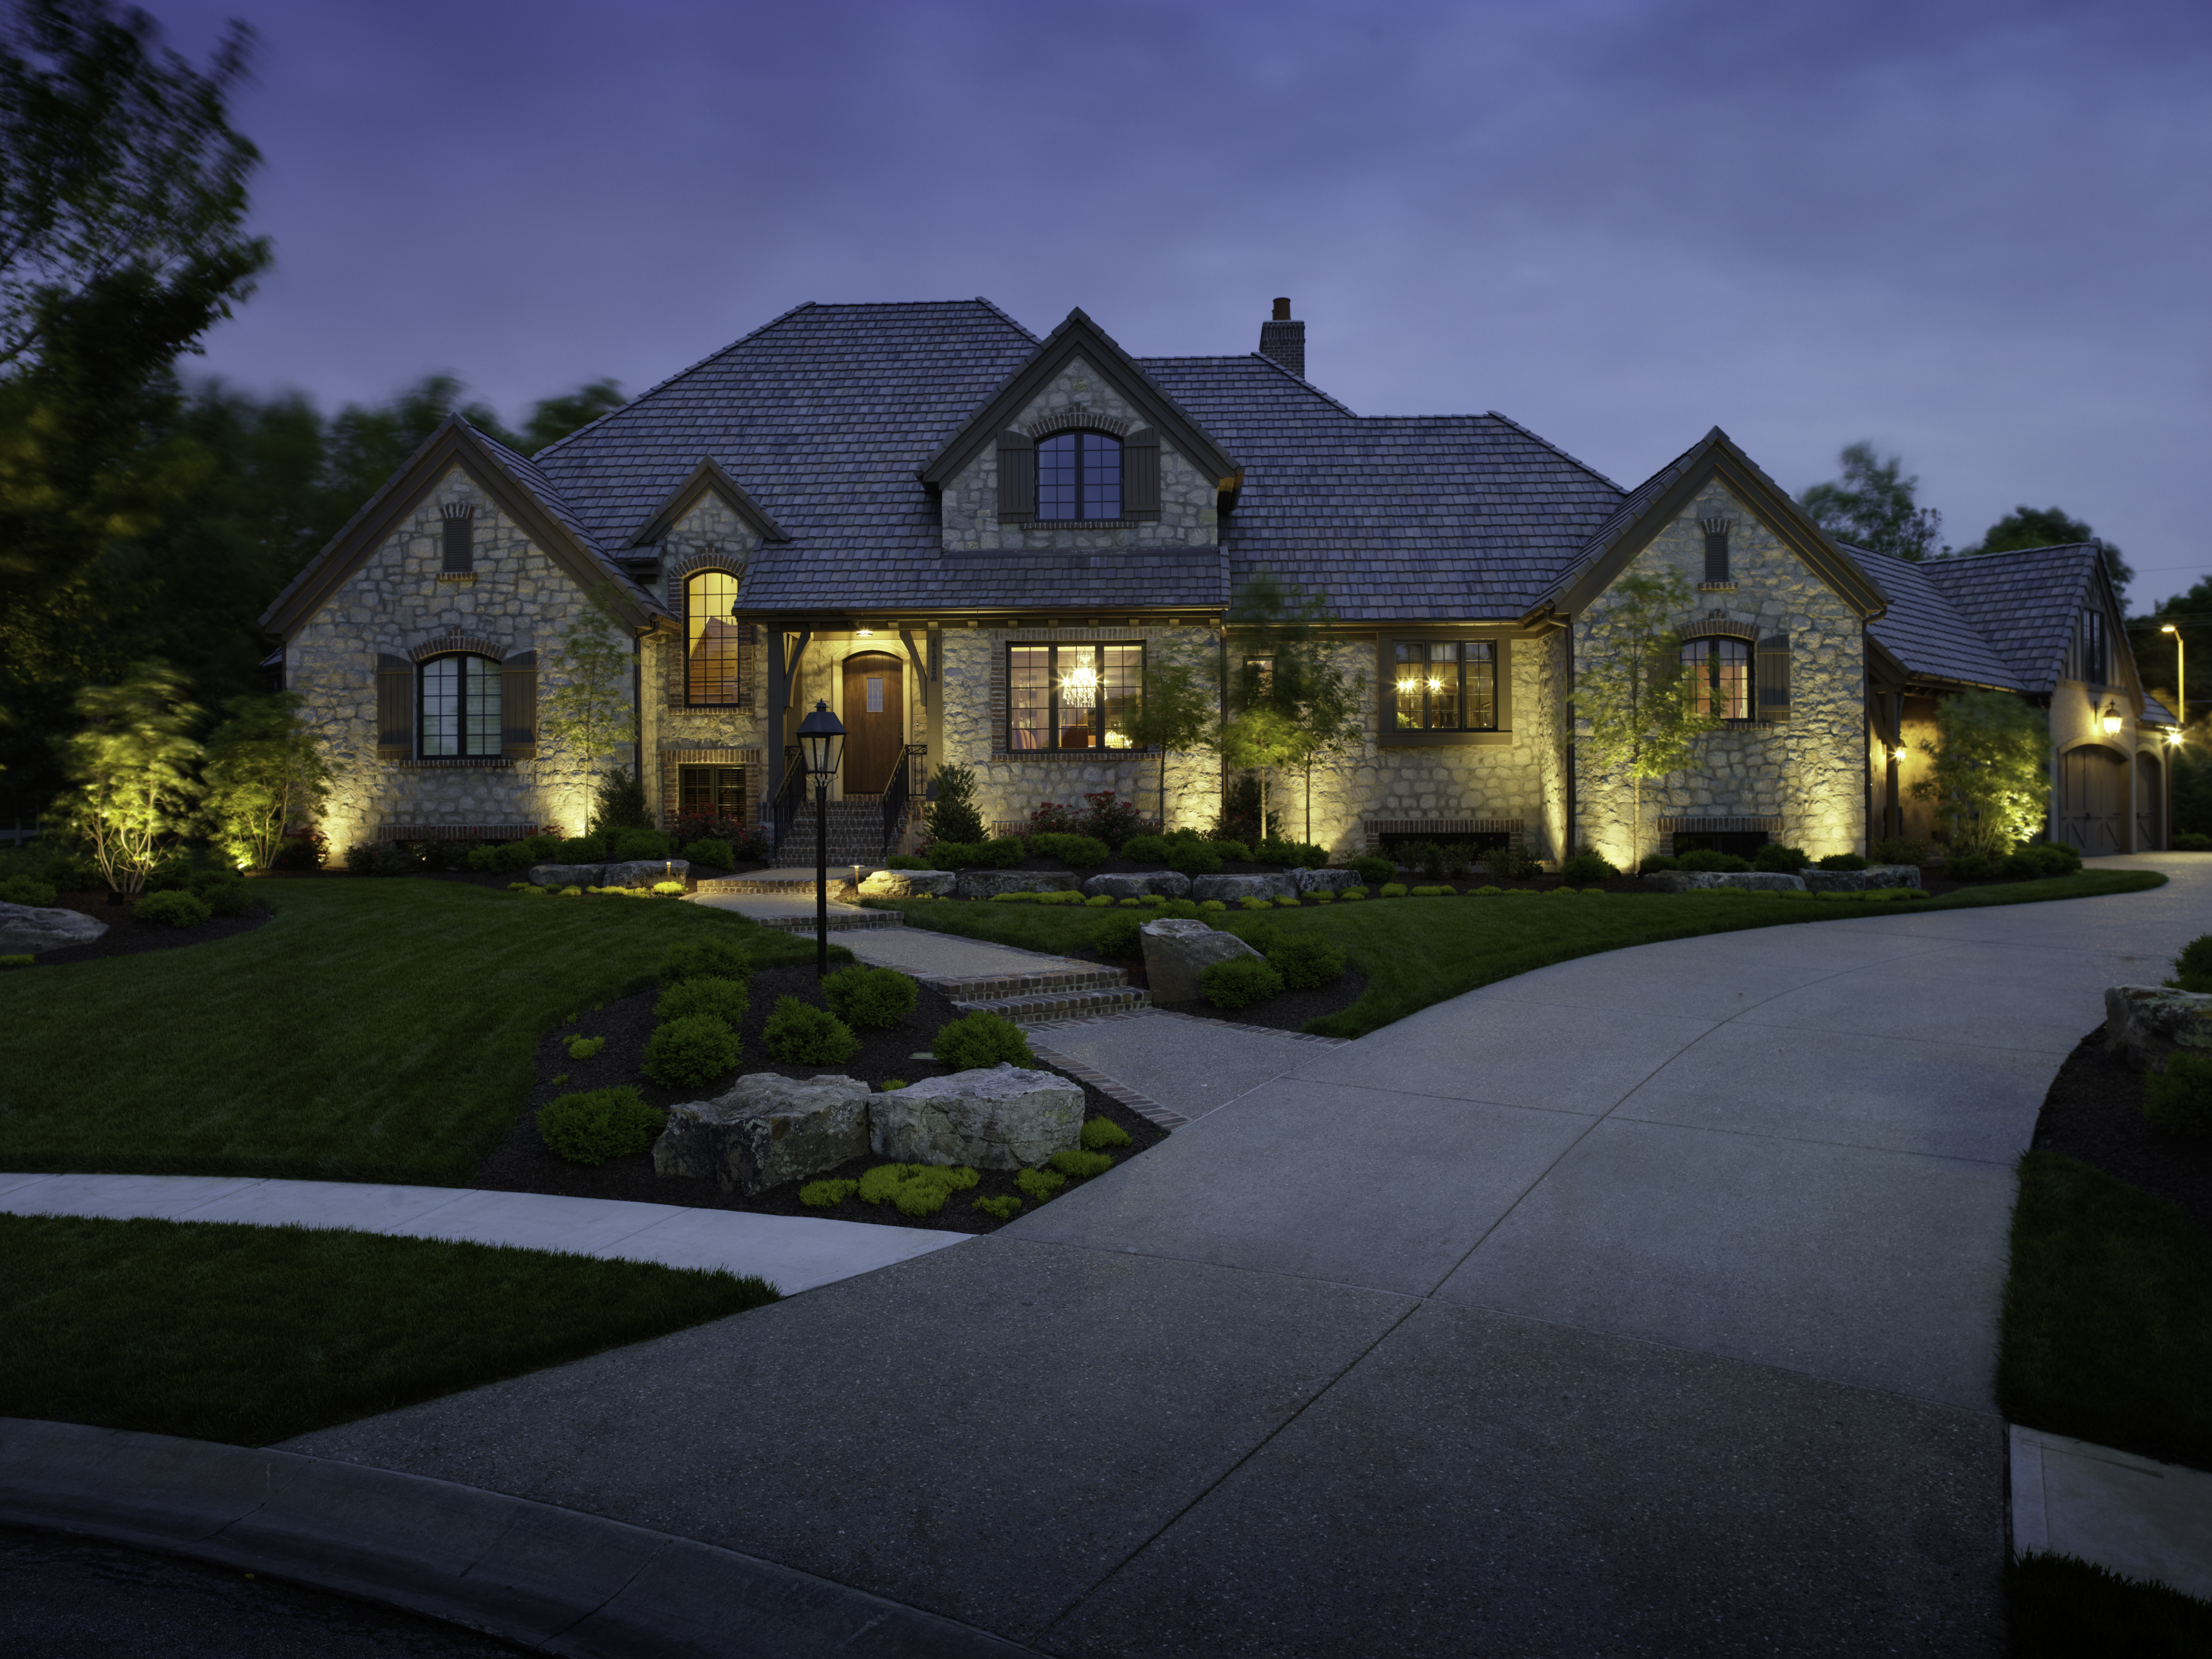 LED Outdoor Lighting Wilmington for Led Lights For Homes Outdoor 56mzq